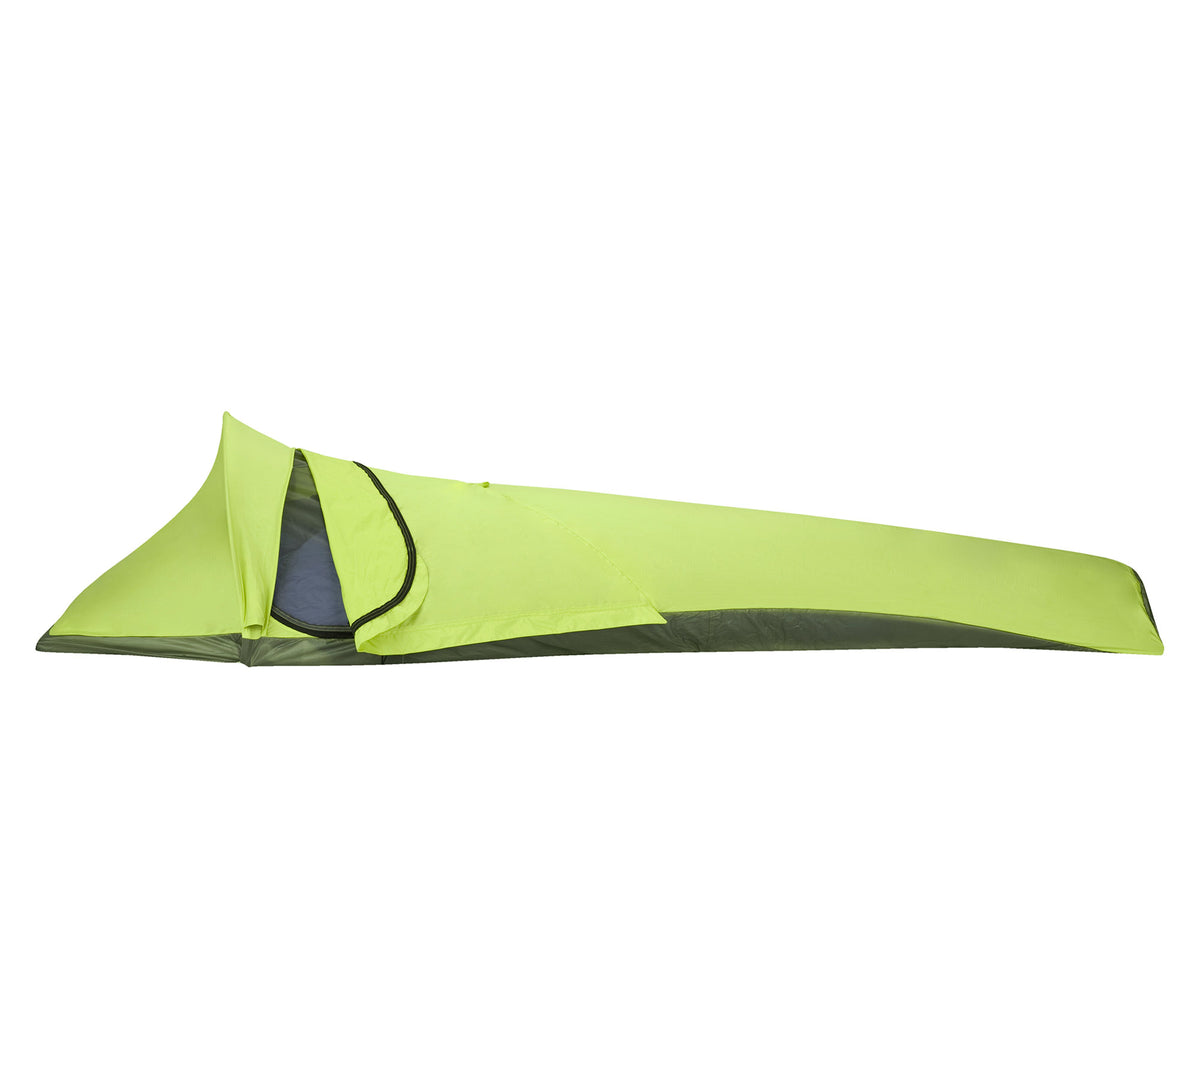 Black Diamond Spotlight Bivy, side view in green colour, showing entrance